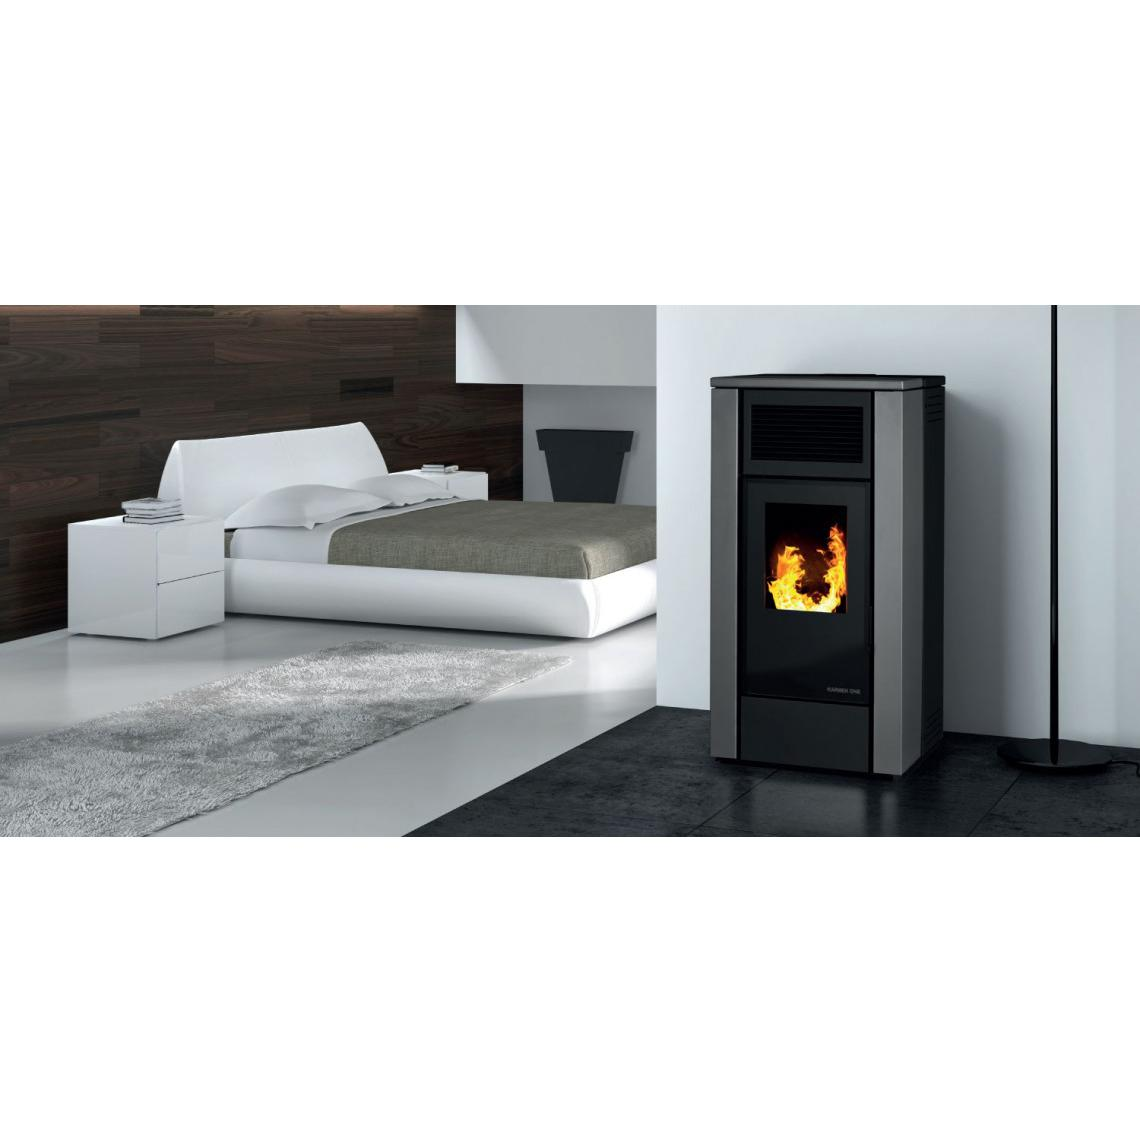 Stufa a pellet Karmek One Stoccolma Plus 13 kw